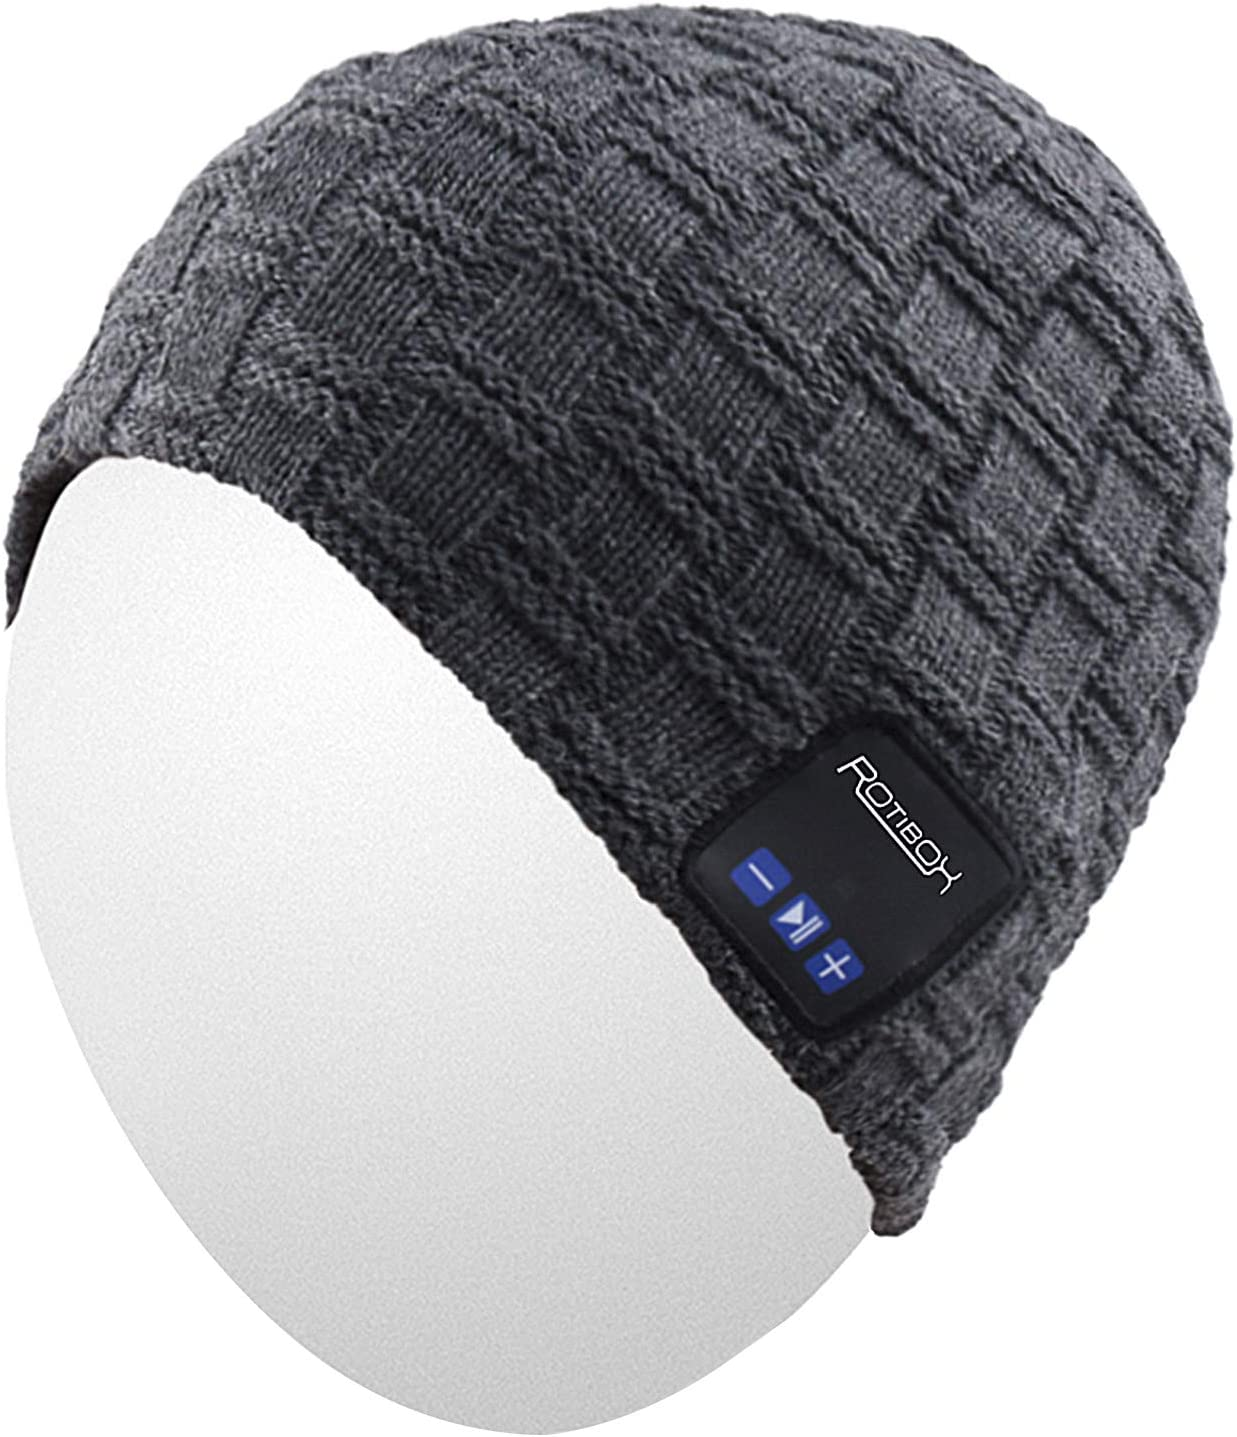 Qshell Winter Trendy Short Wireless Bluetooth Beanie Hat Cap for Men Women with Stereo Headphones Headsets Speakers Hands-Free Call for Outdoor Sports Gym Skiing Skating Walking, Gray